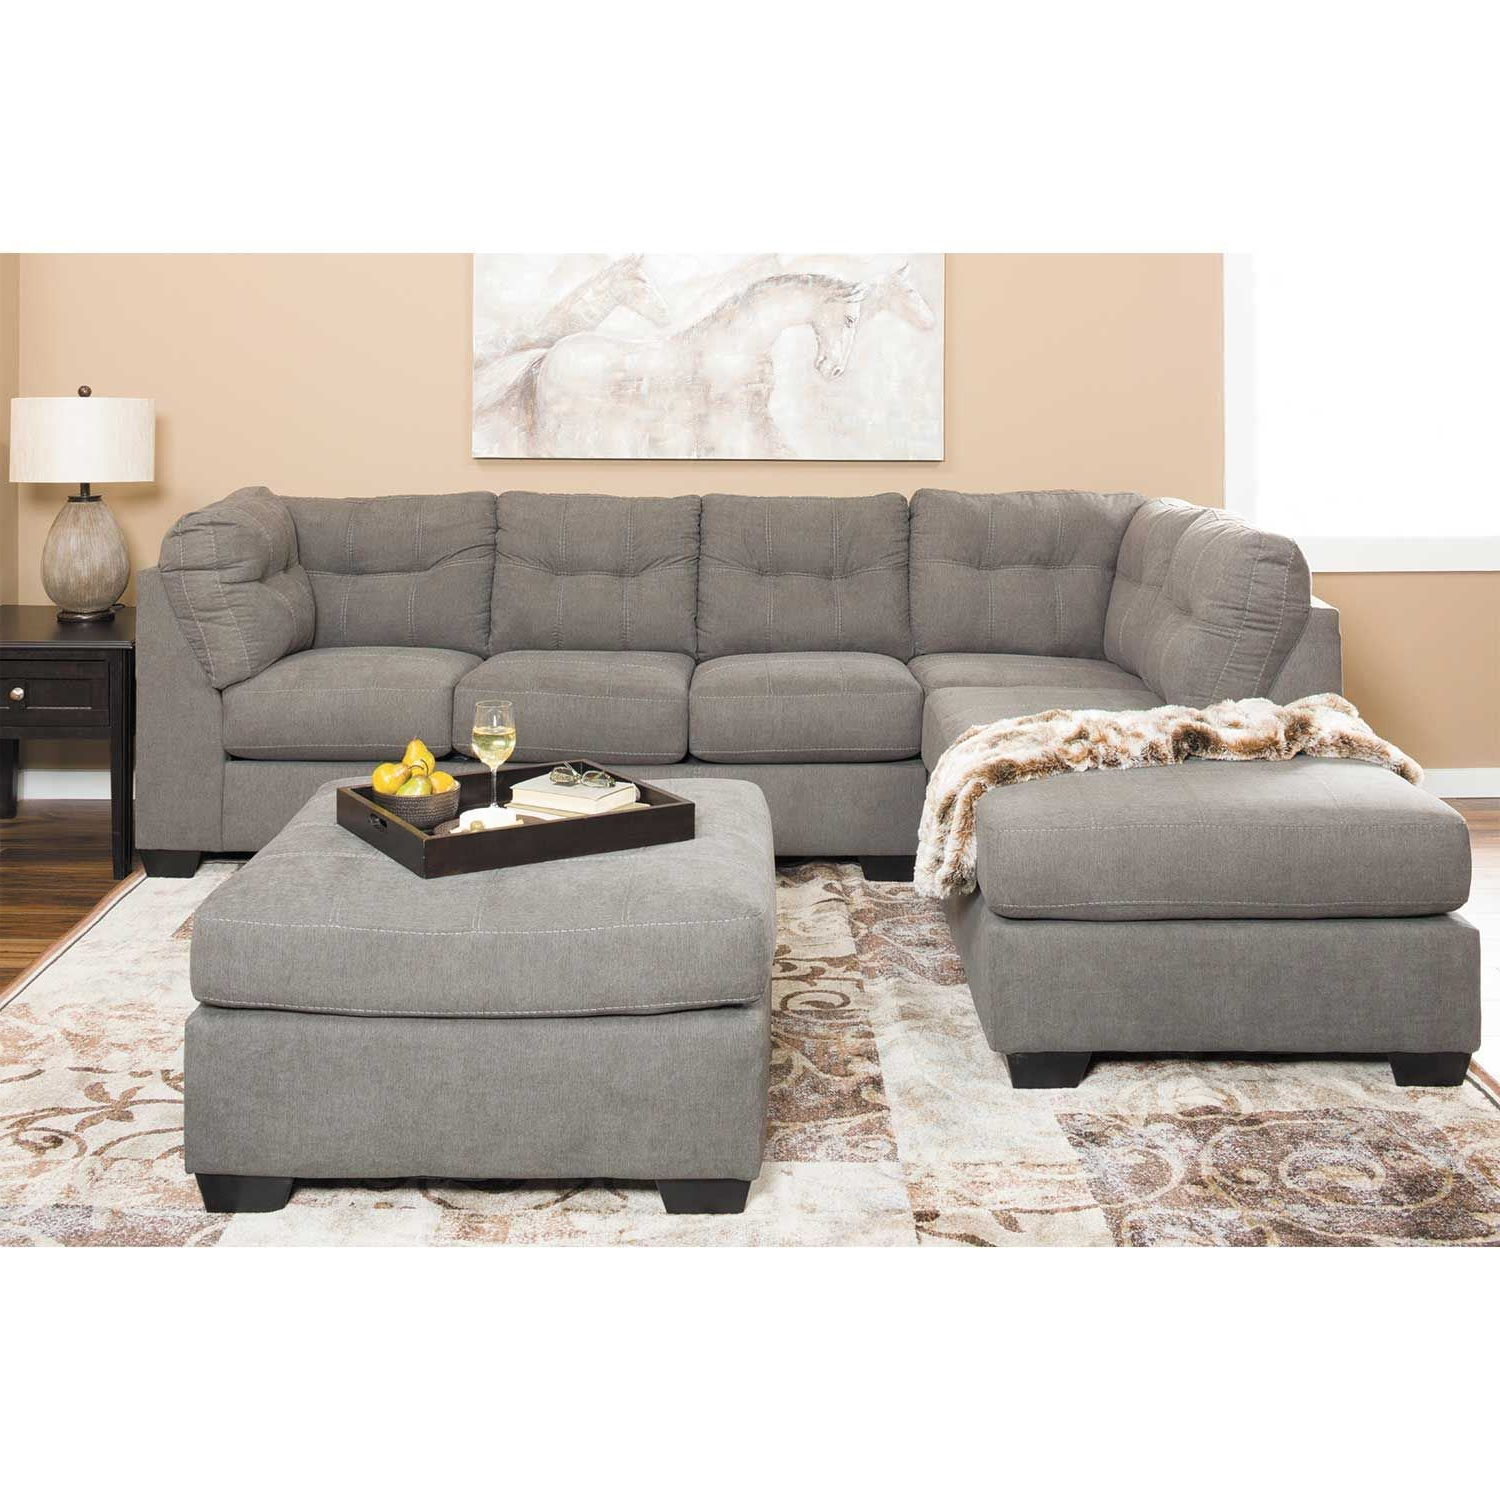 4520016/67 With Arrowmask 2 Piece Sectionals With Raf Chaise (View 4 of 20)